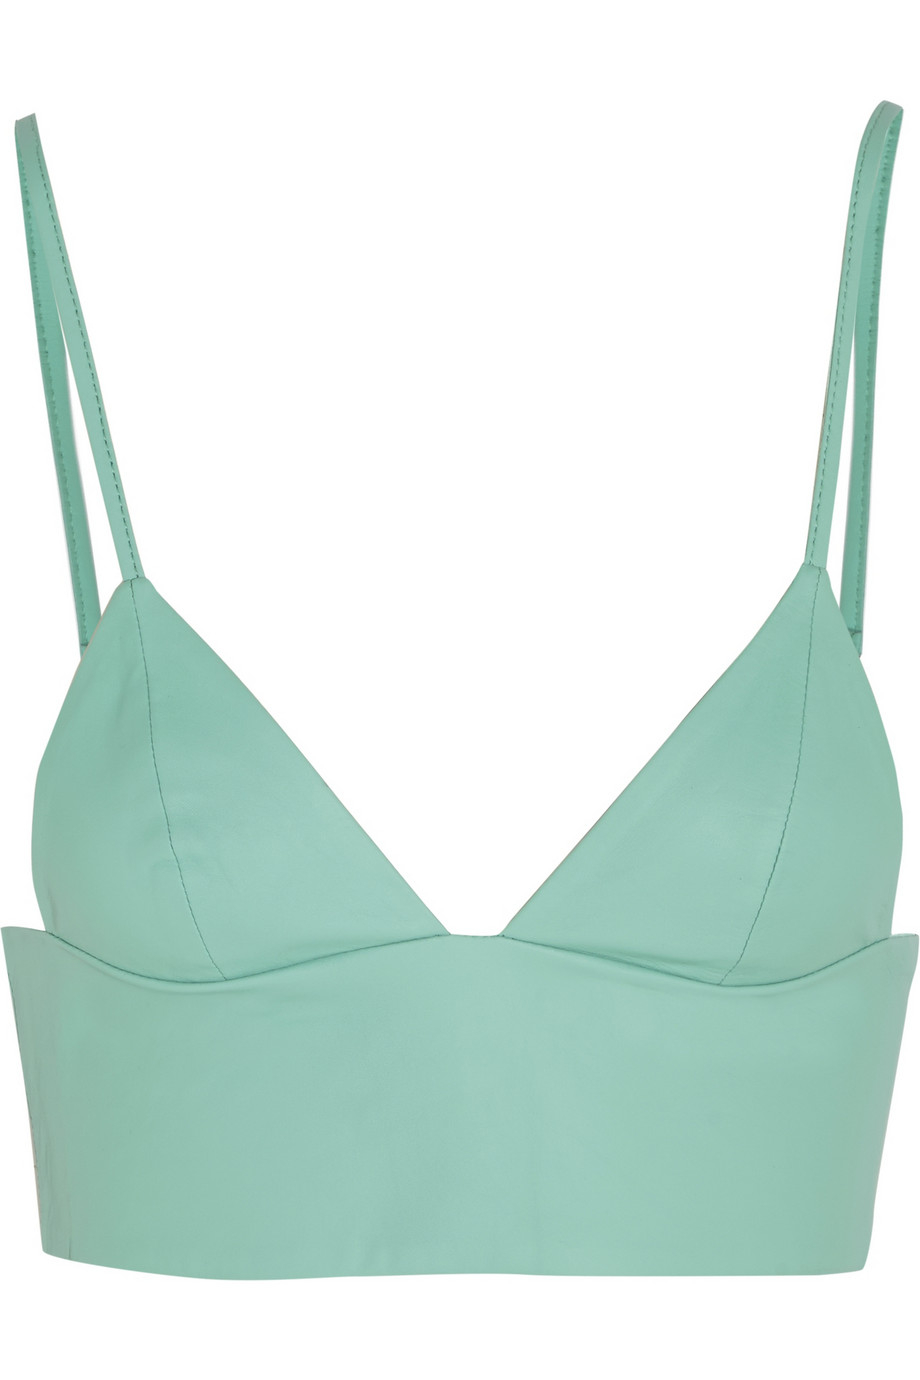 8e4c42576 T By Alexander Wang Leather Bra Top in Green - Lyst